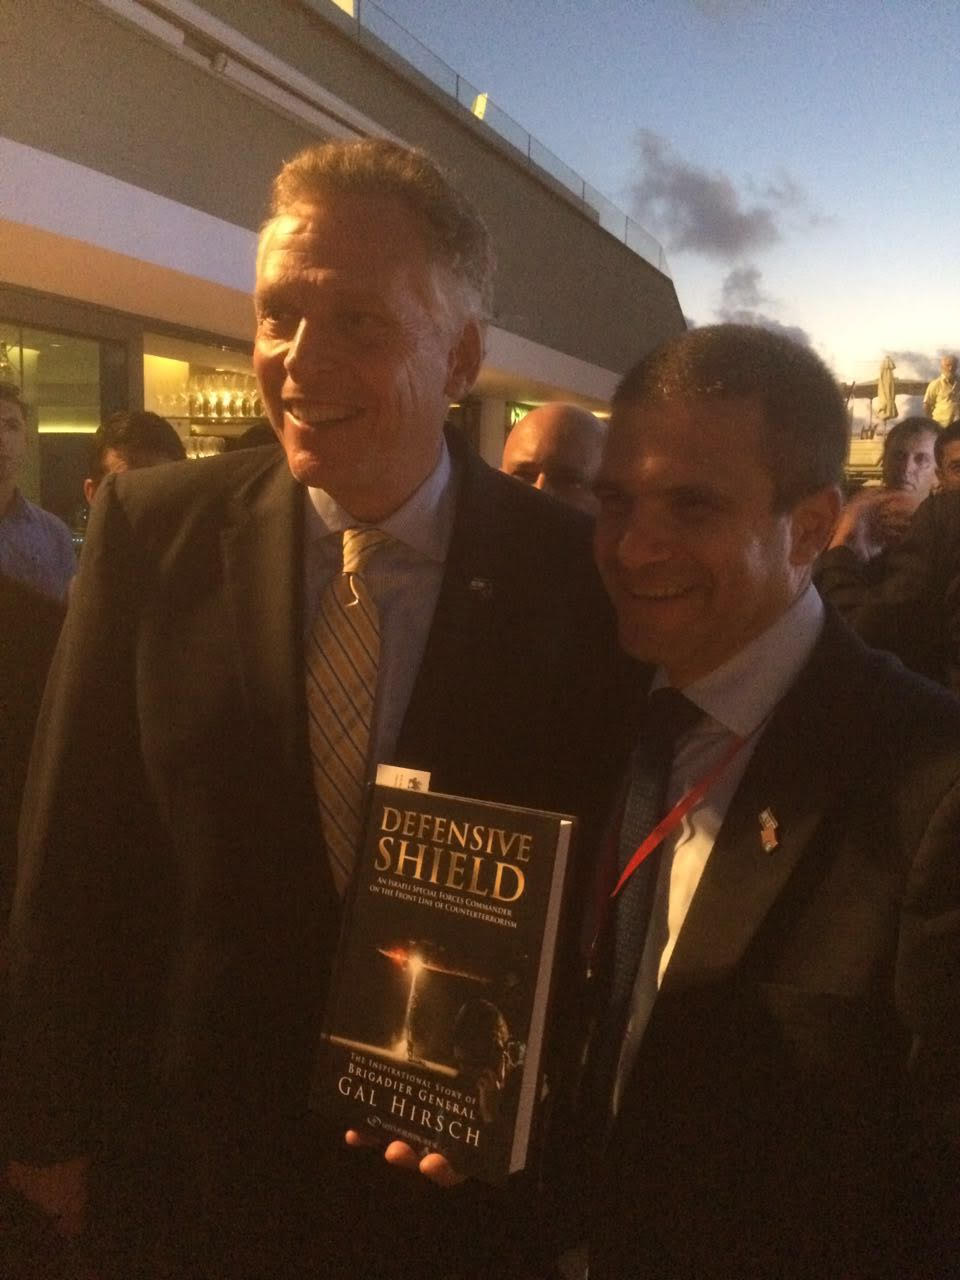 With Governor Mr. Terry Mcauliffe